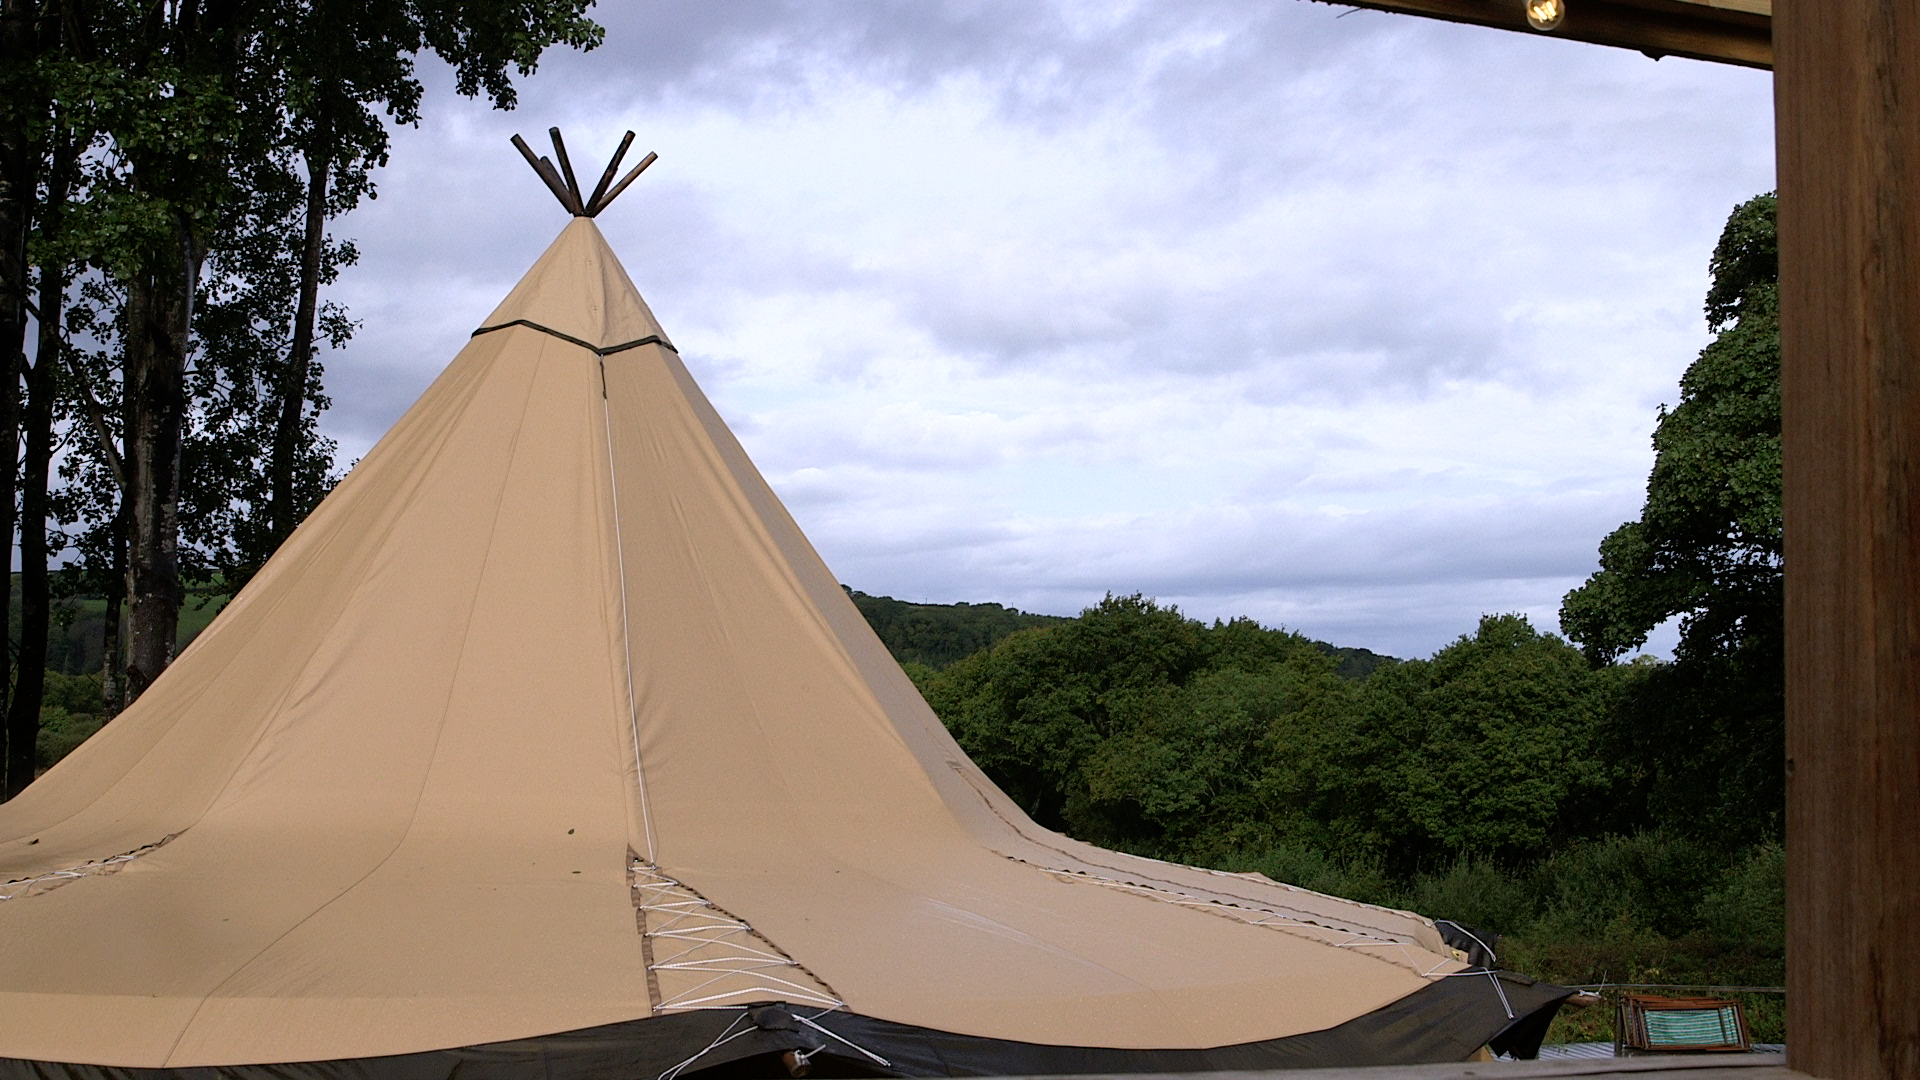 Teepee Video still from Fforest Farm